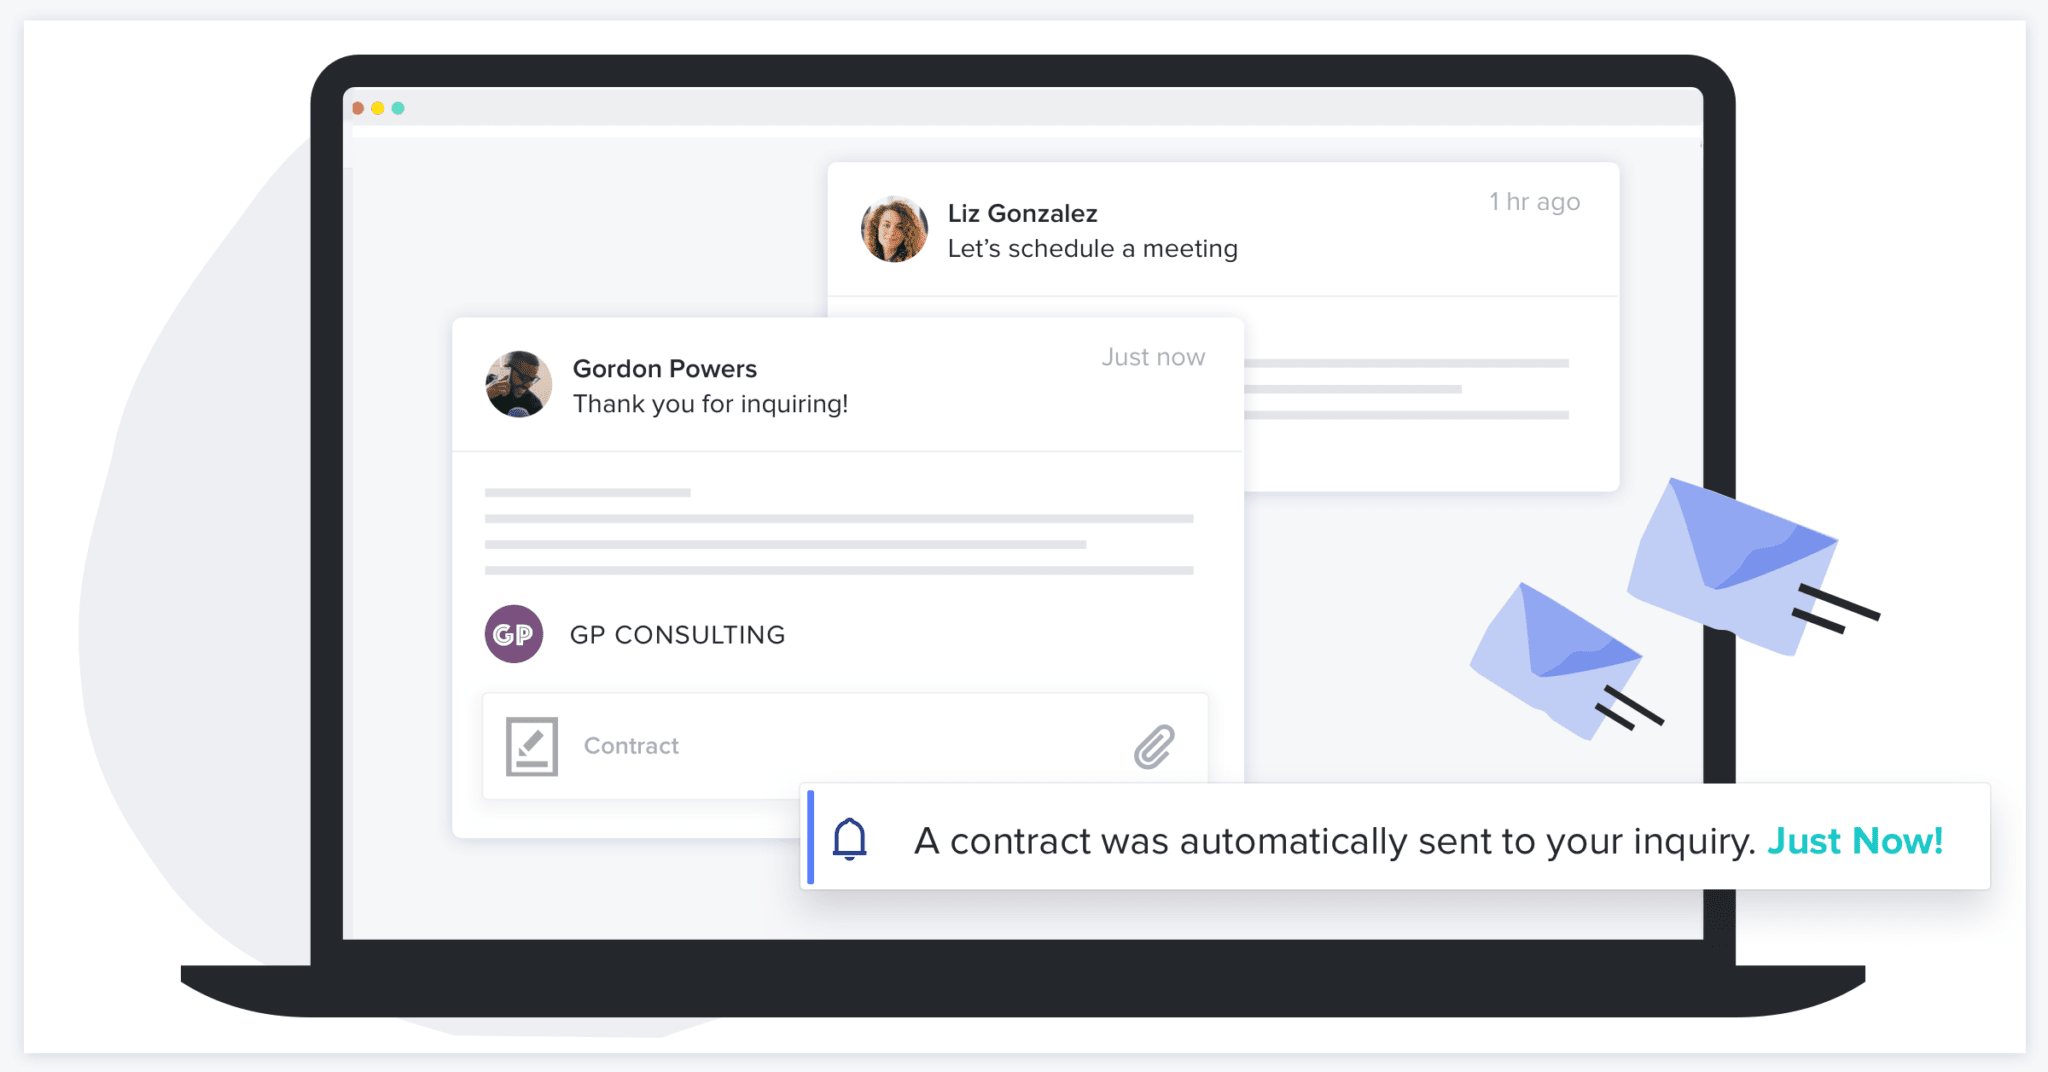 Laptop showing HoneyBook email automation with the steps to automatically send a contract